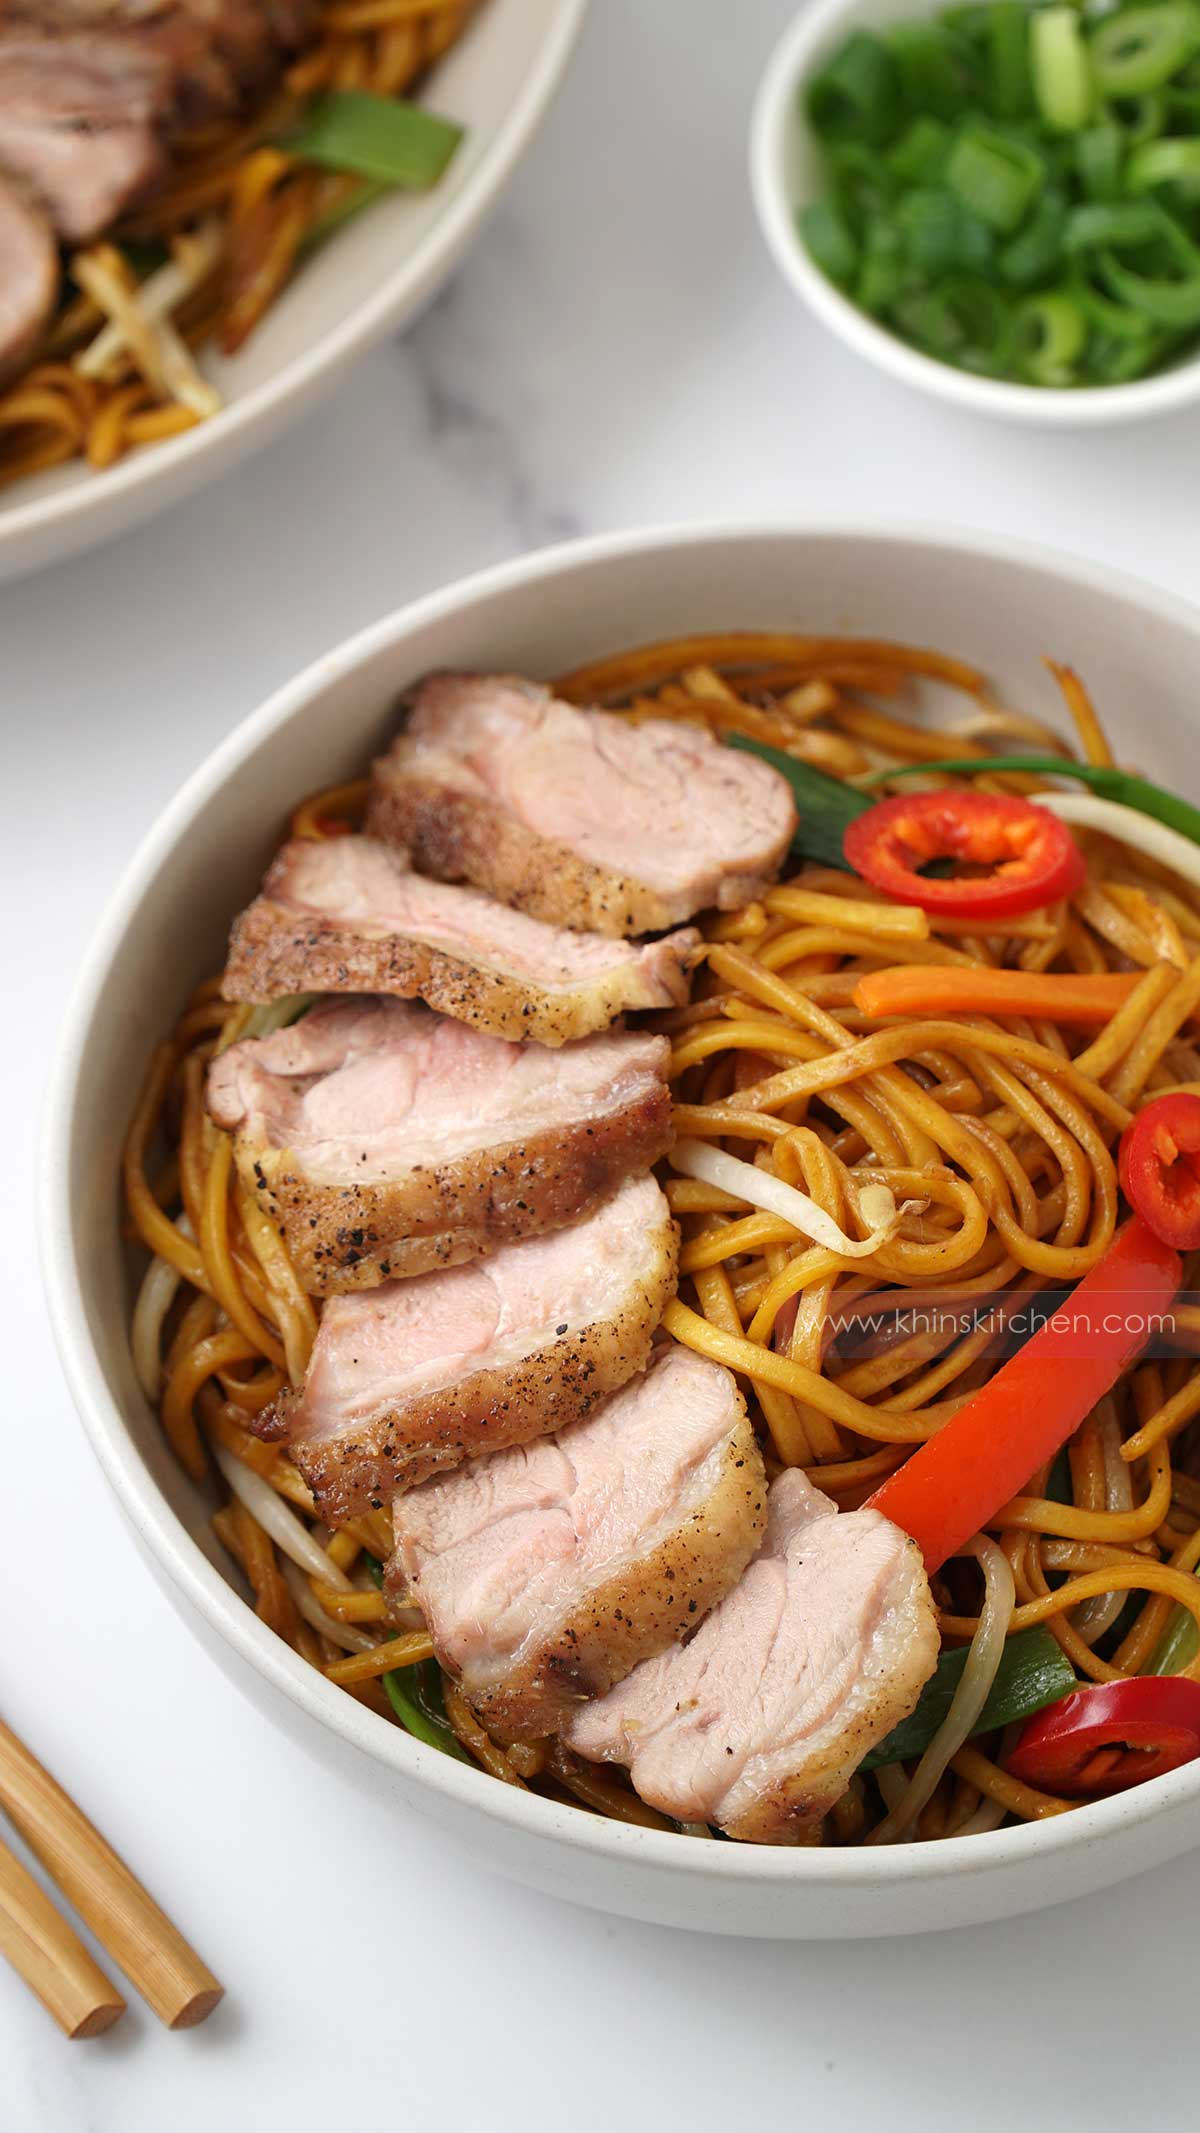 A white bowl containing stir fried noodles, vegetables and roasted sliced duck.